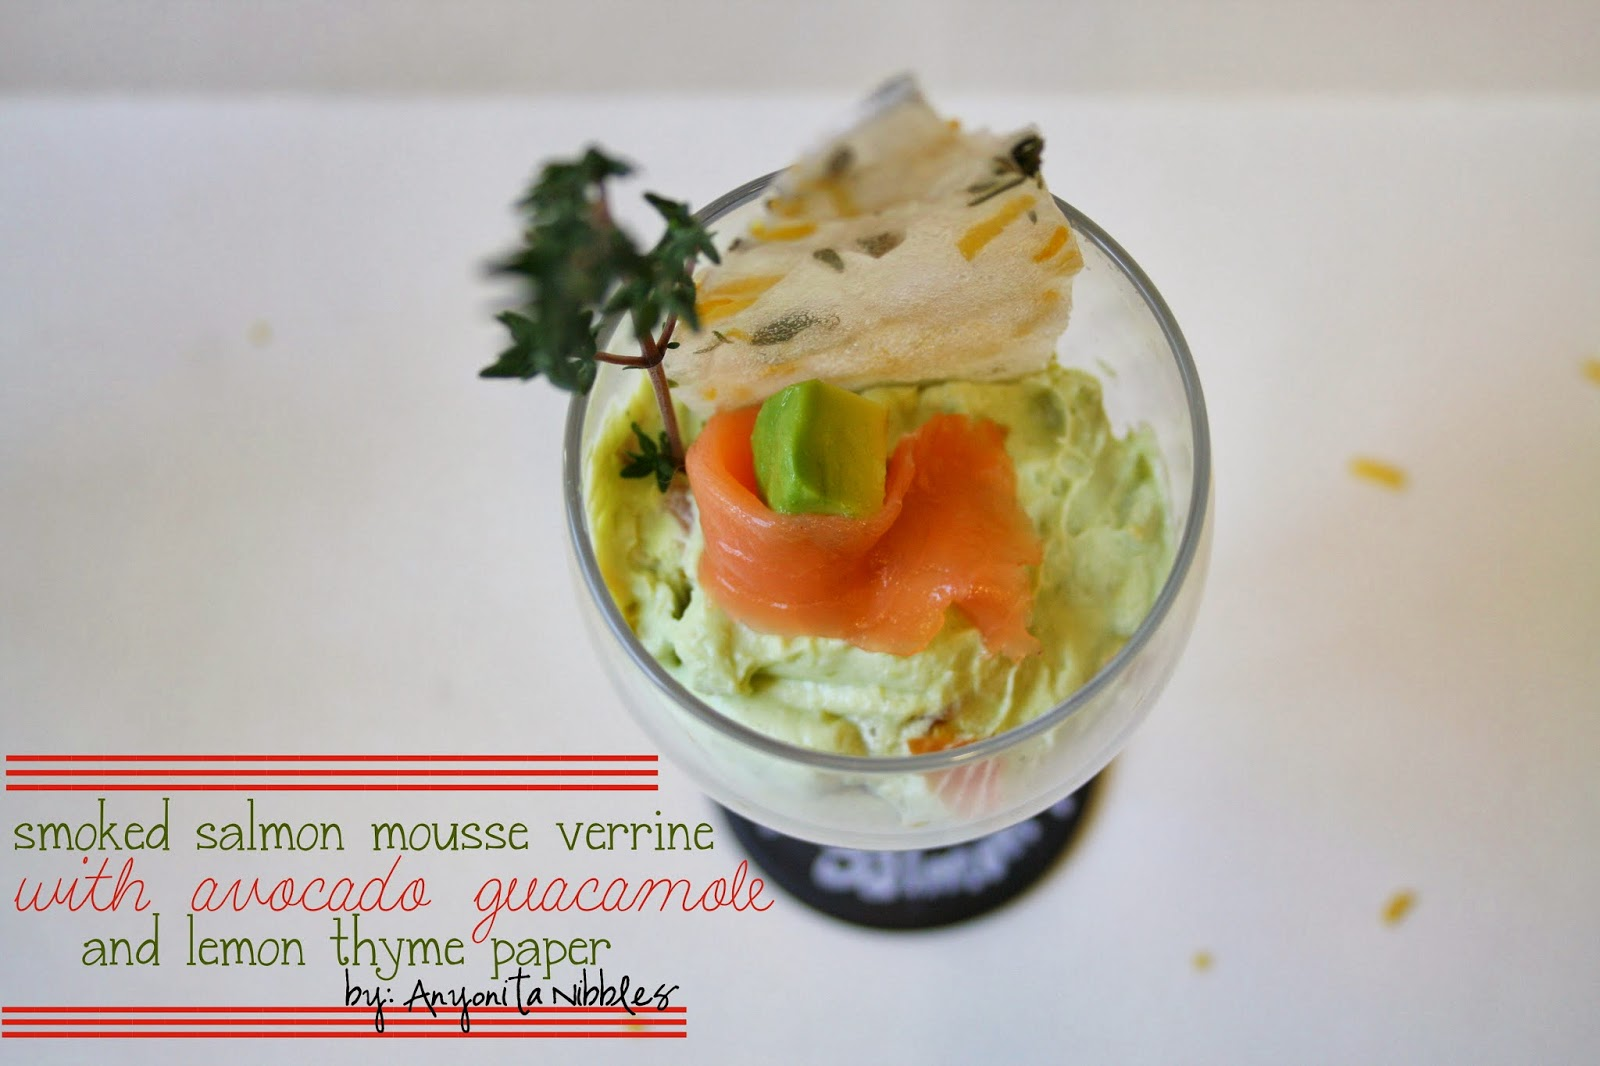 Smoked Salmon Mousse Verrine with Avocado Guacamole and Lemon Thyme Paper